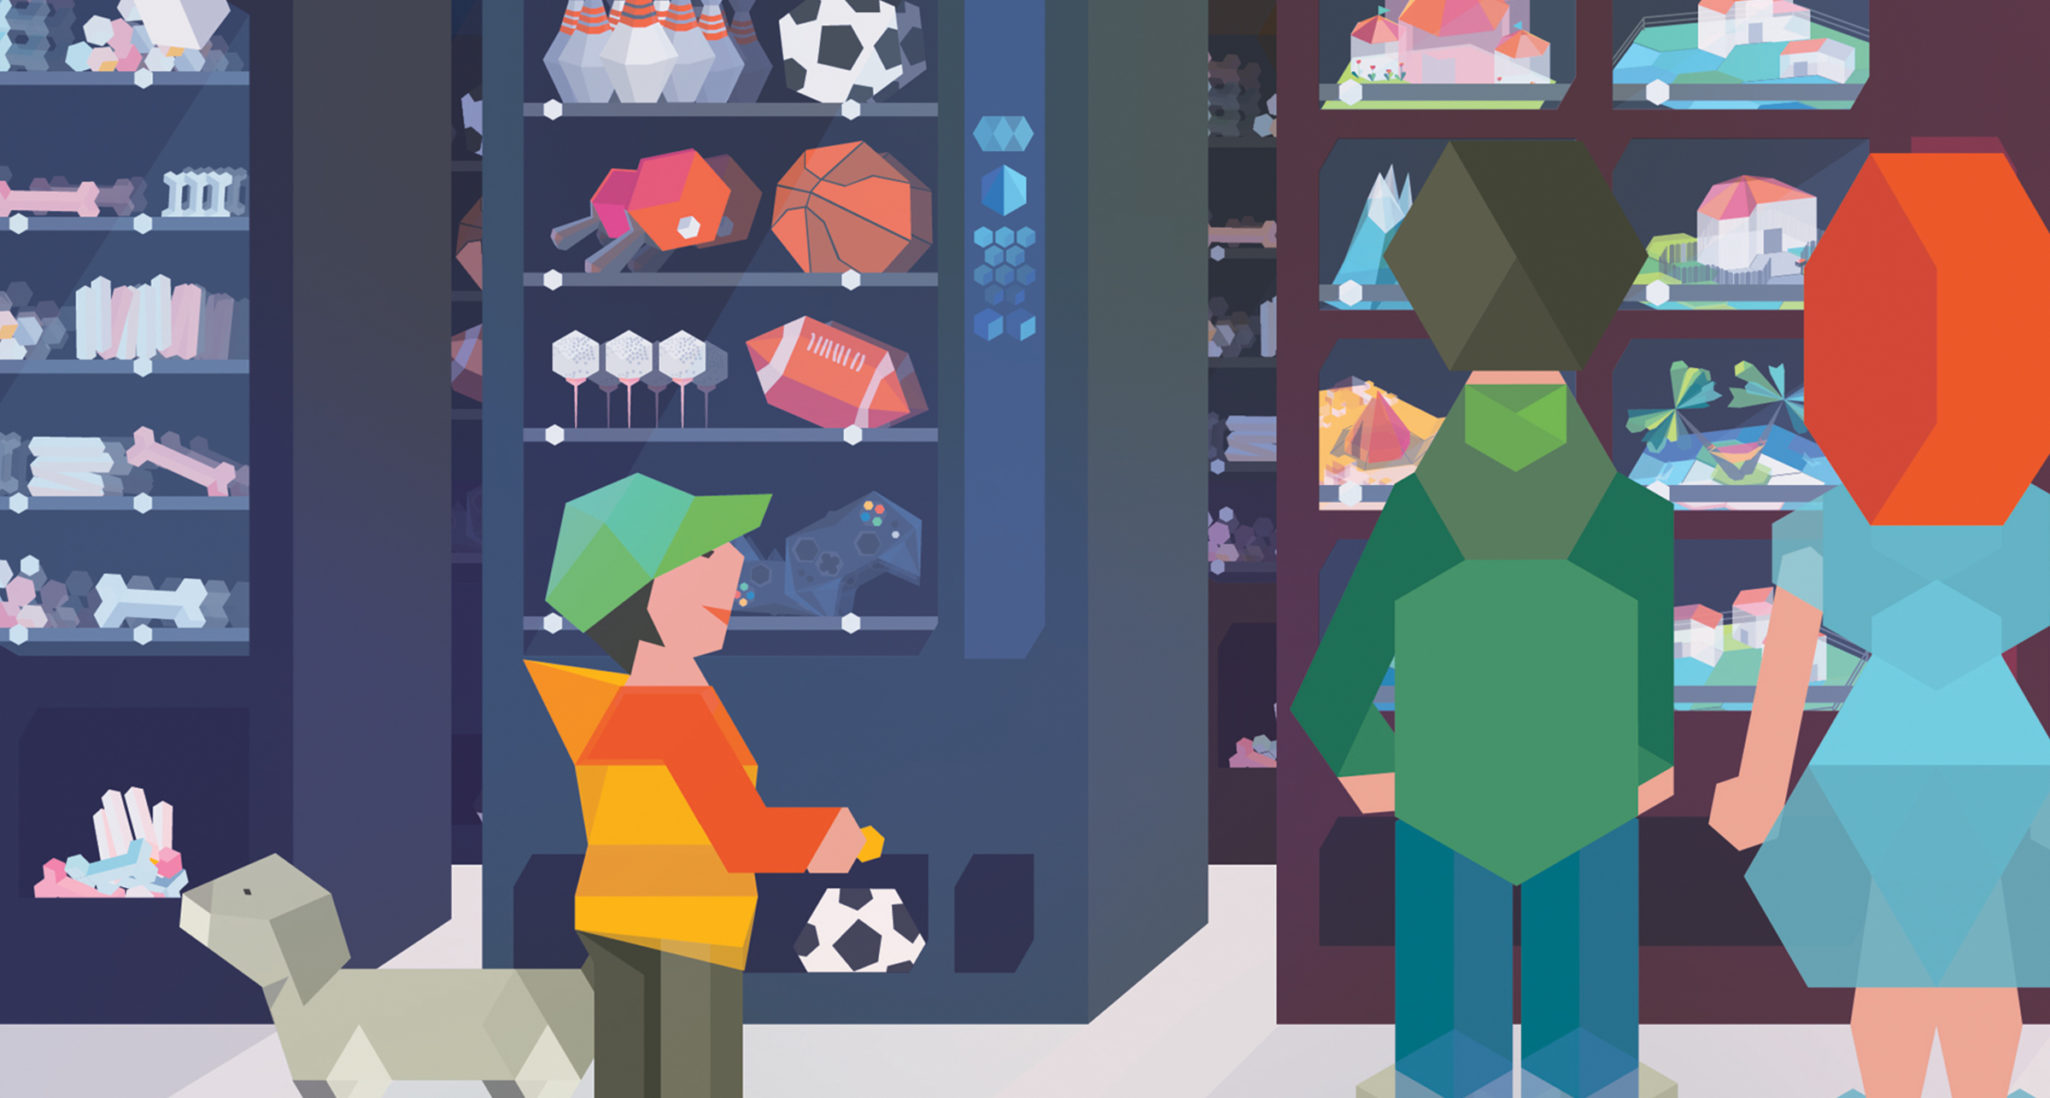 Vector illustration: People in front ov vending machines